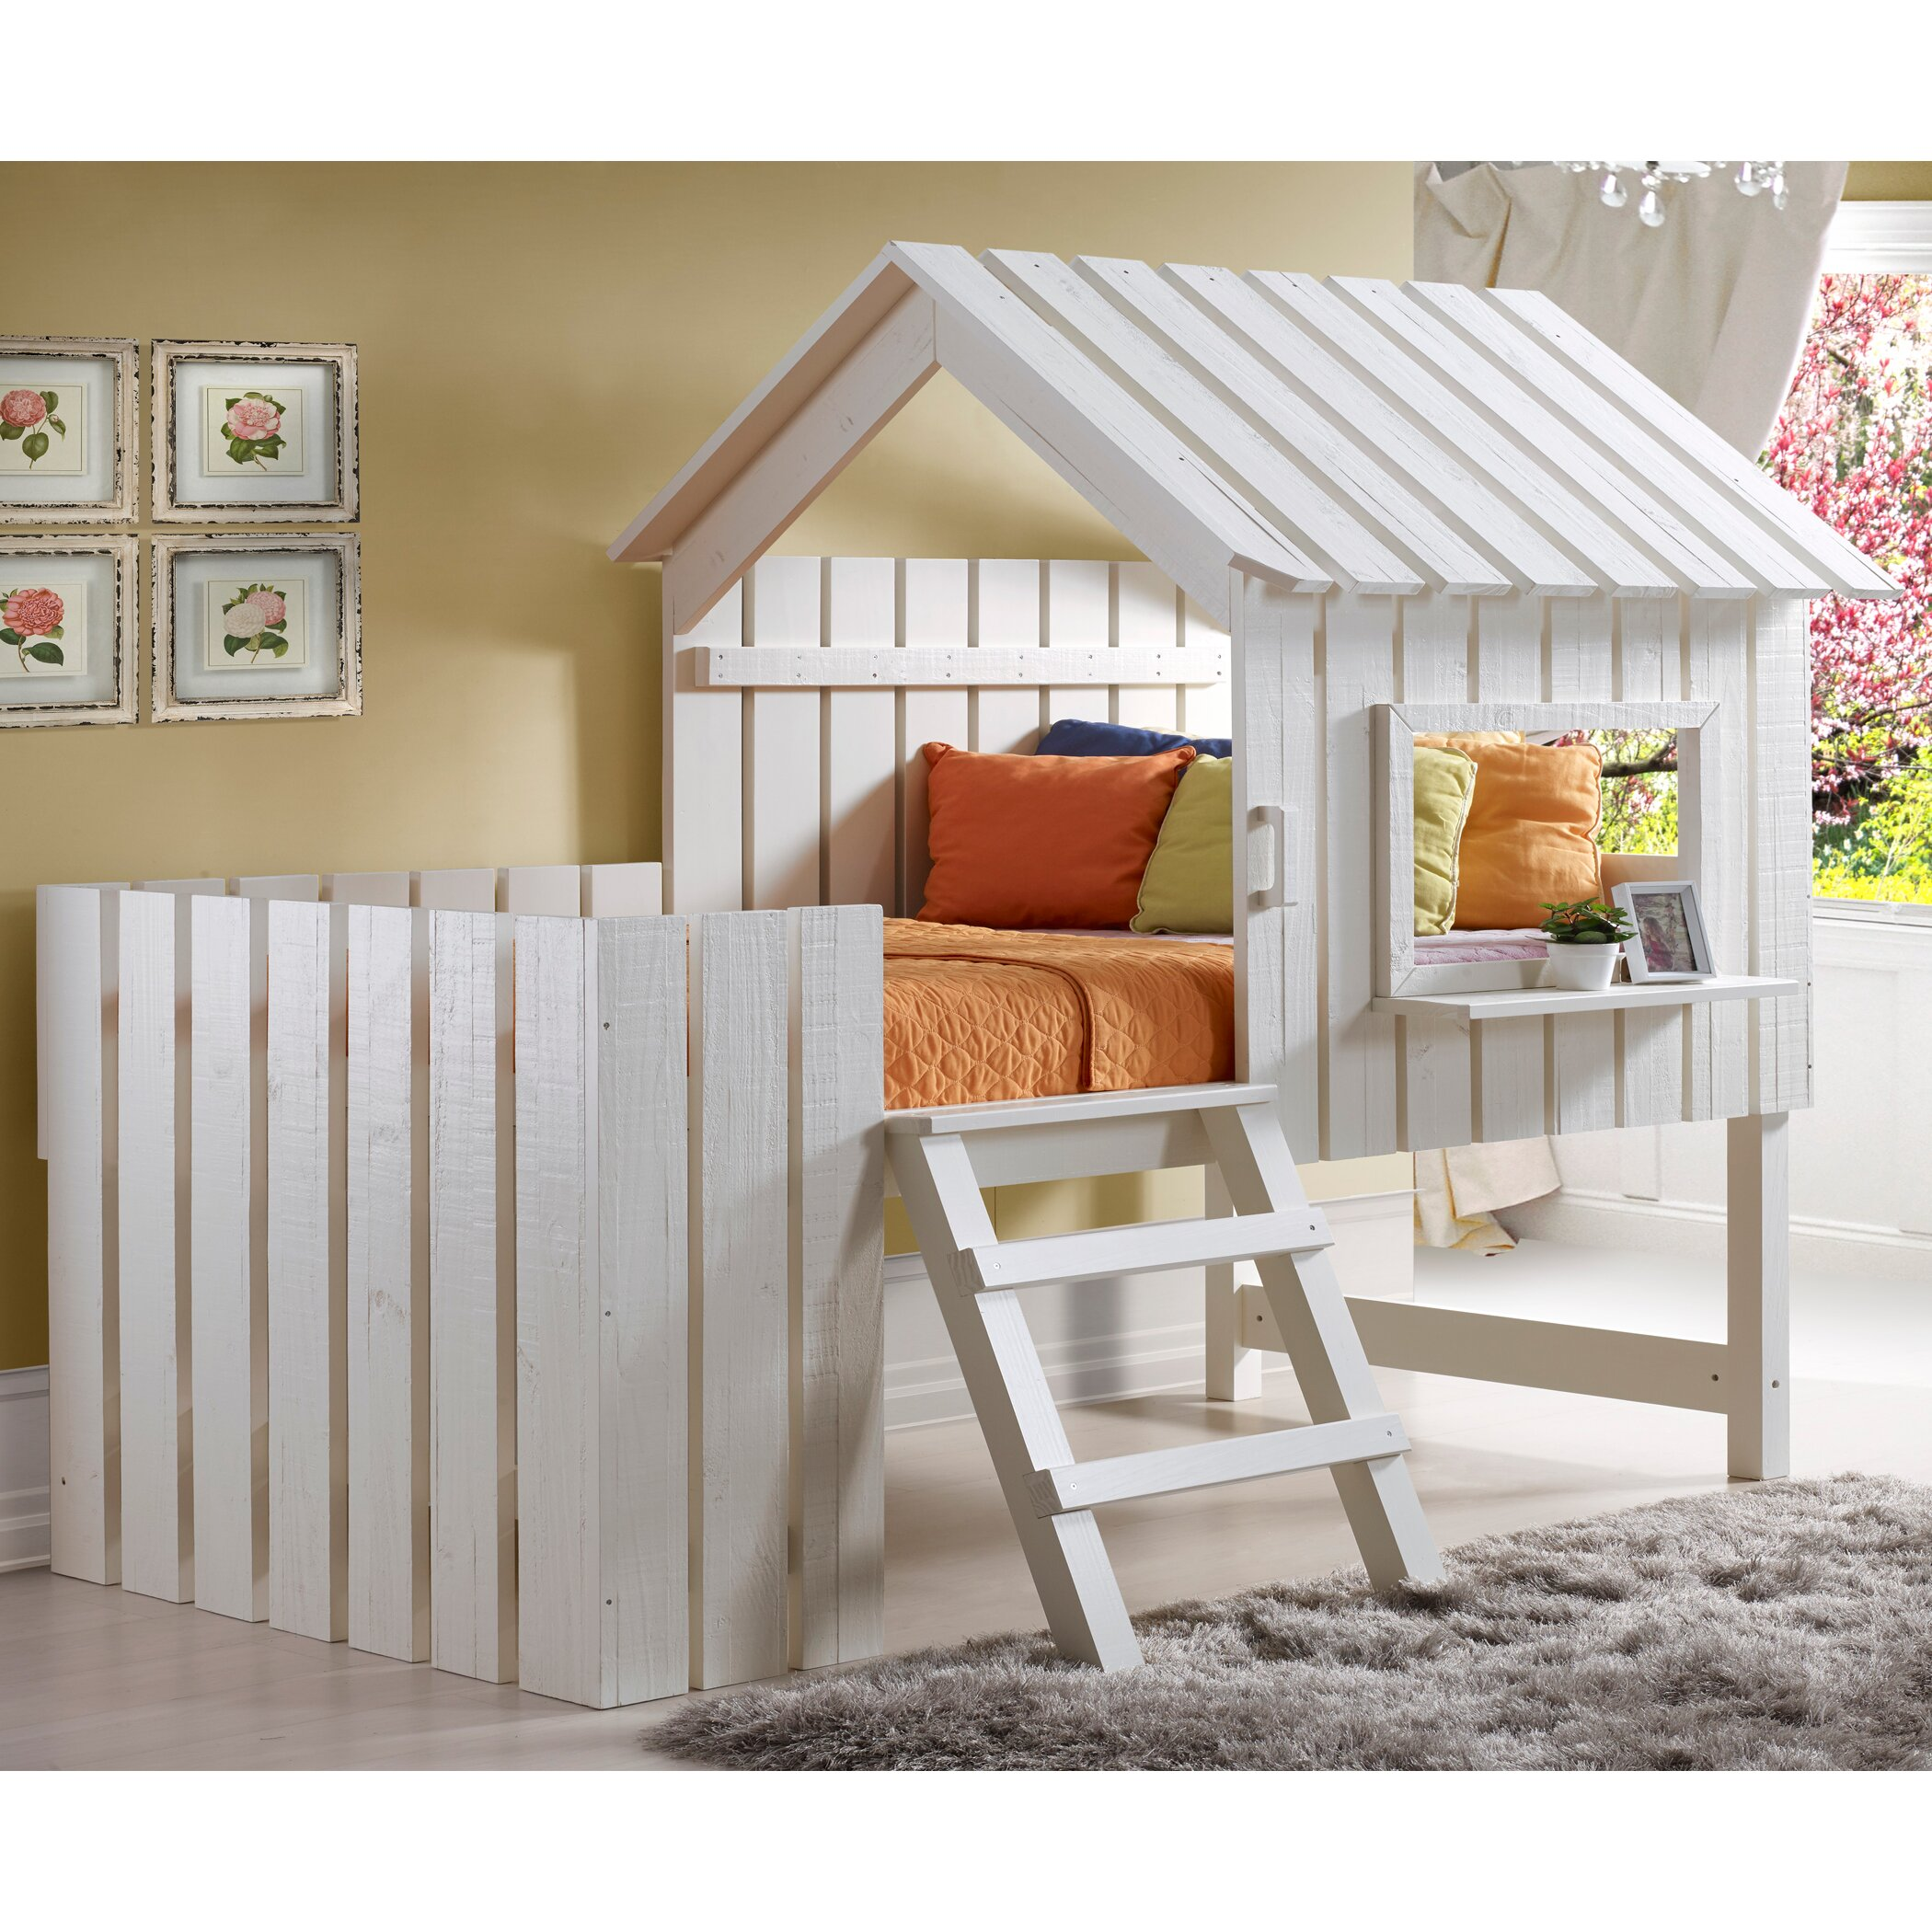 Donco Loft Bed Canopy